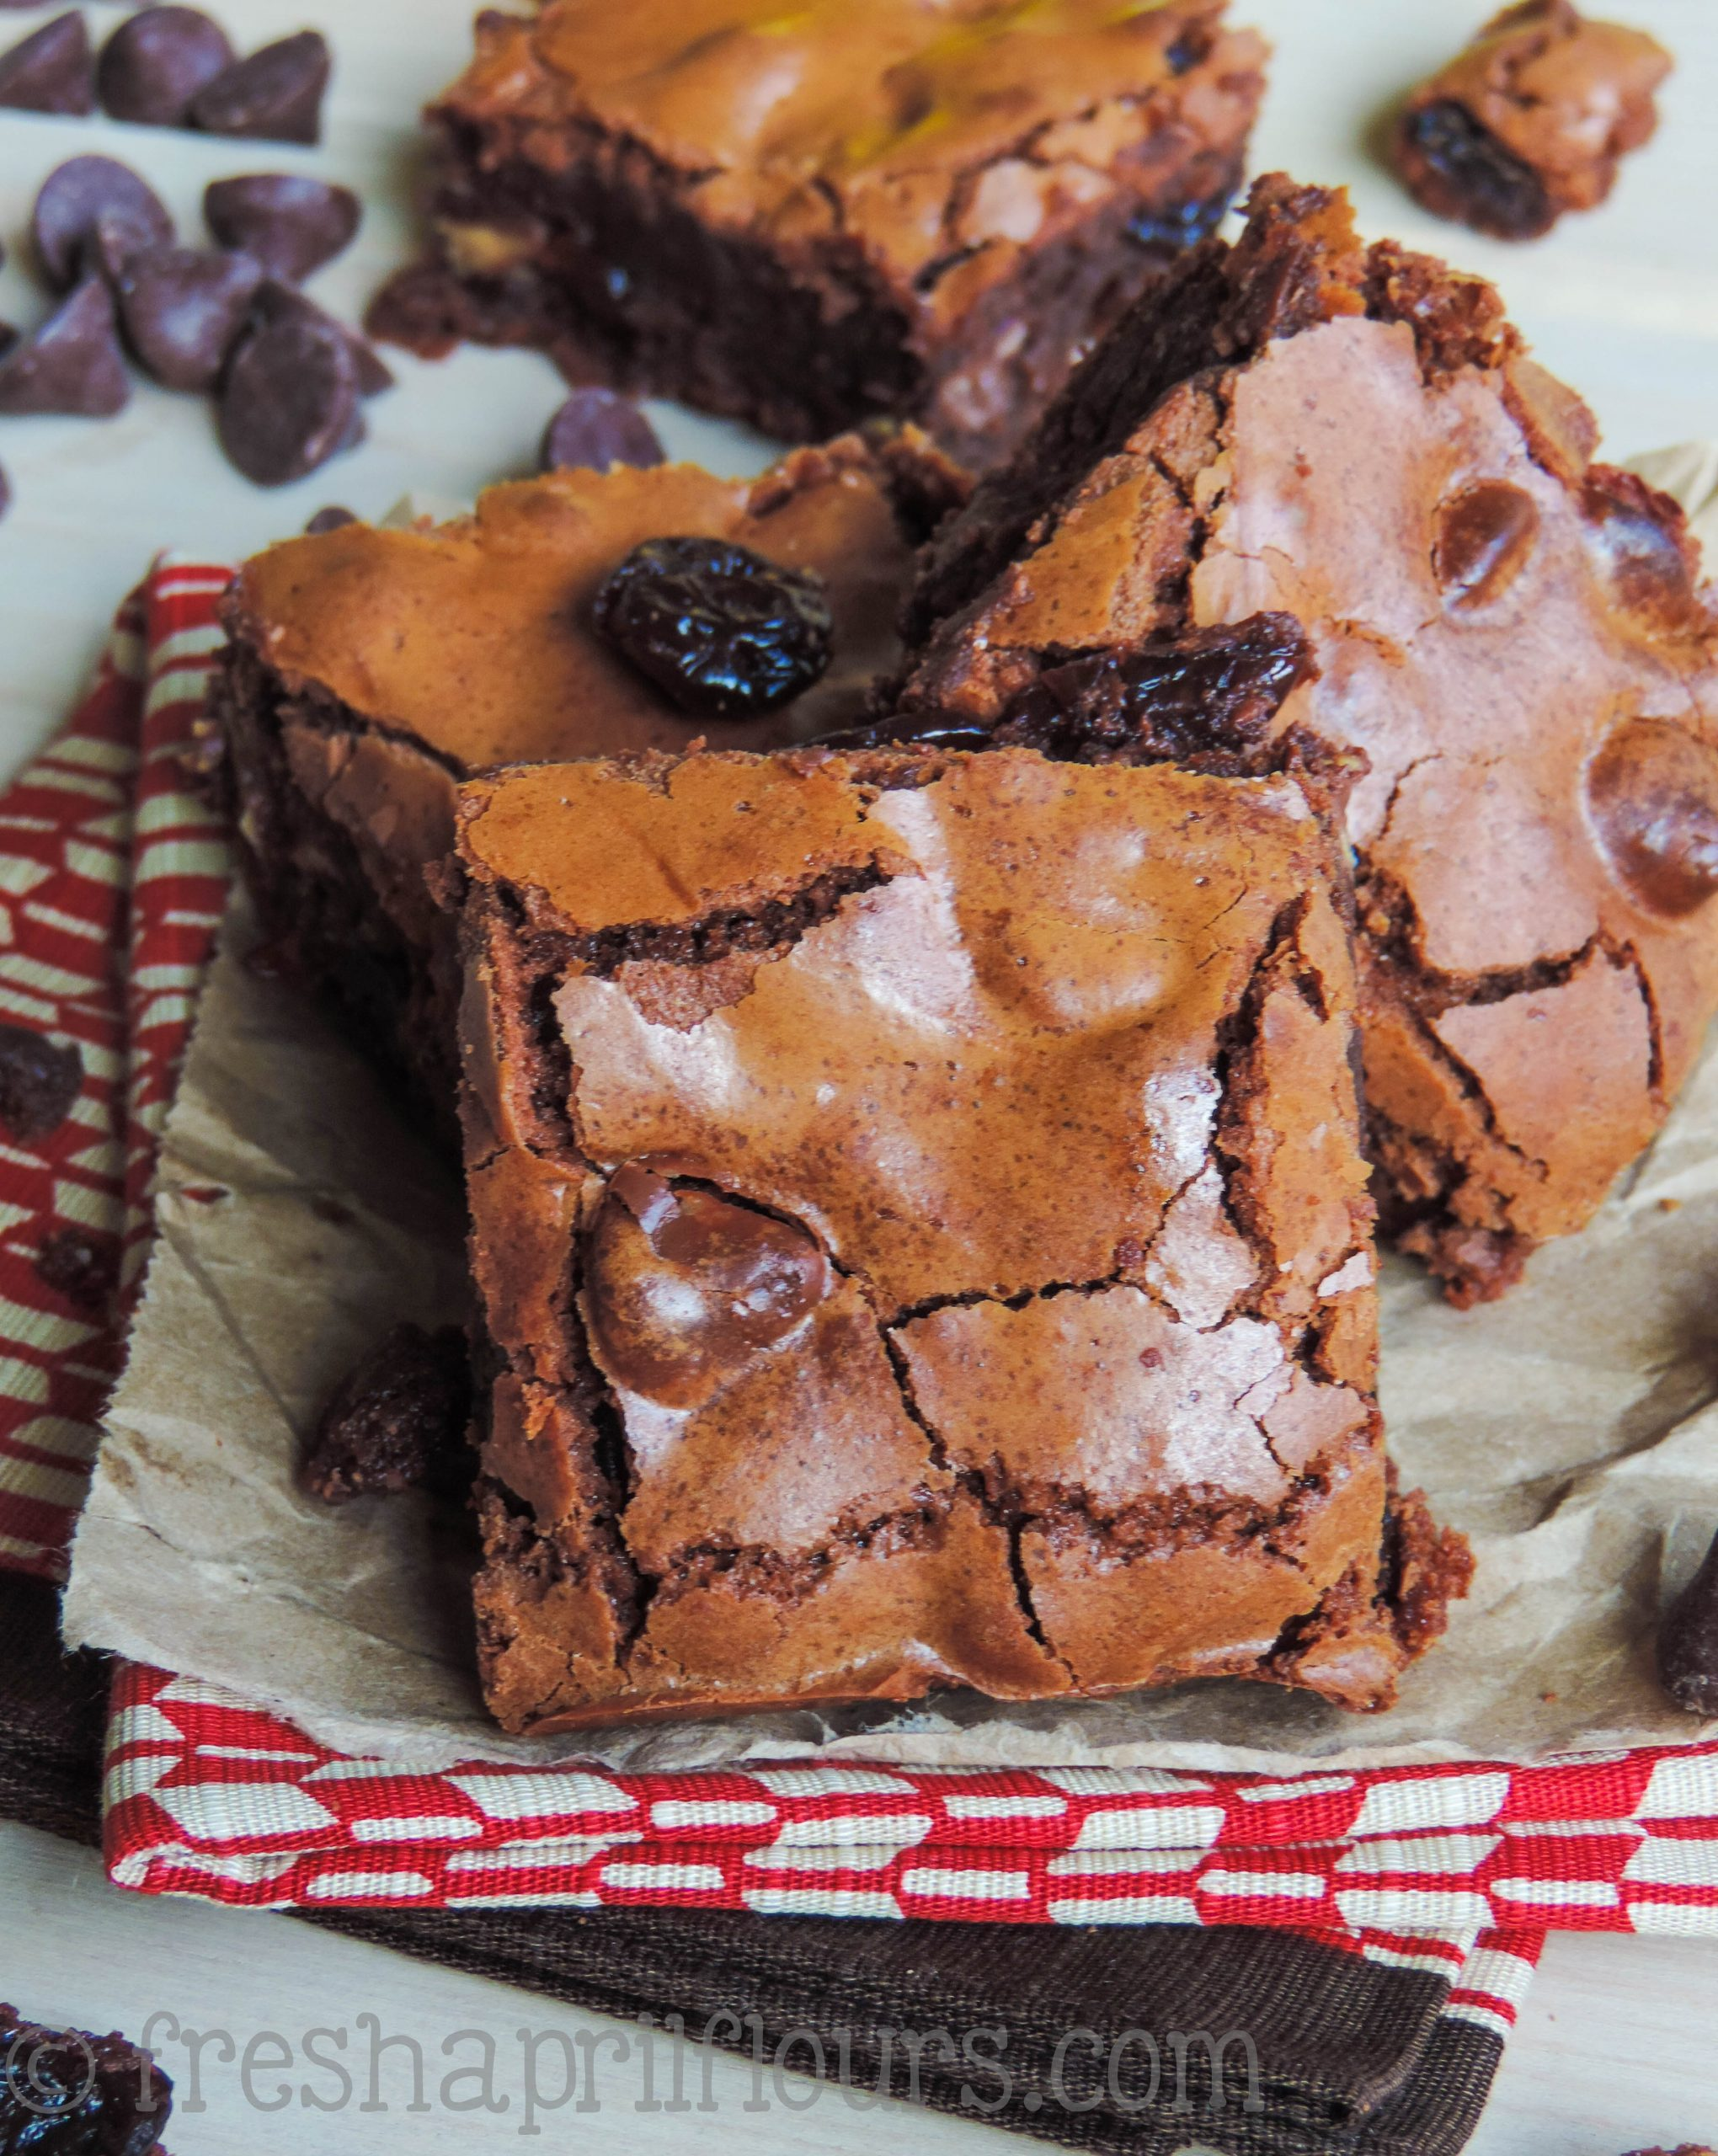 Chocolate Cherry Chunk Brownies: Chewy, fudgy, from scratch brownies studded with plump dried cherries and chocolate chunks. A chocolate cherry dream!